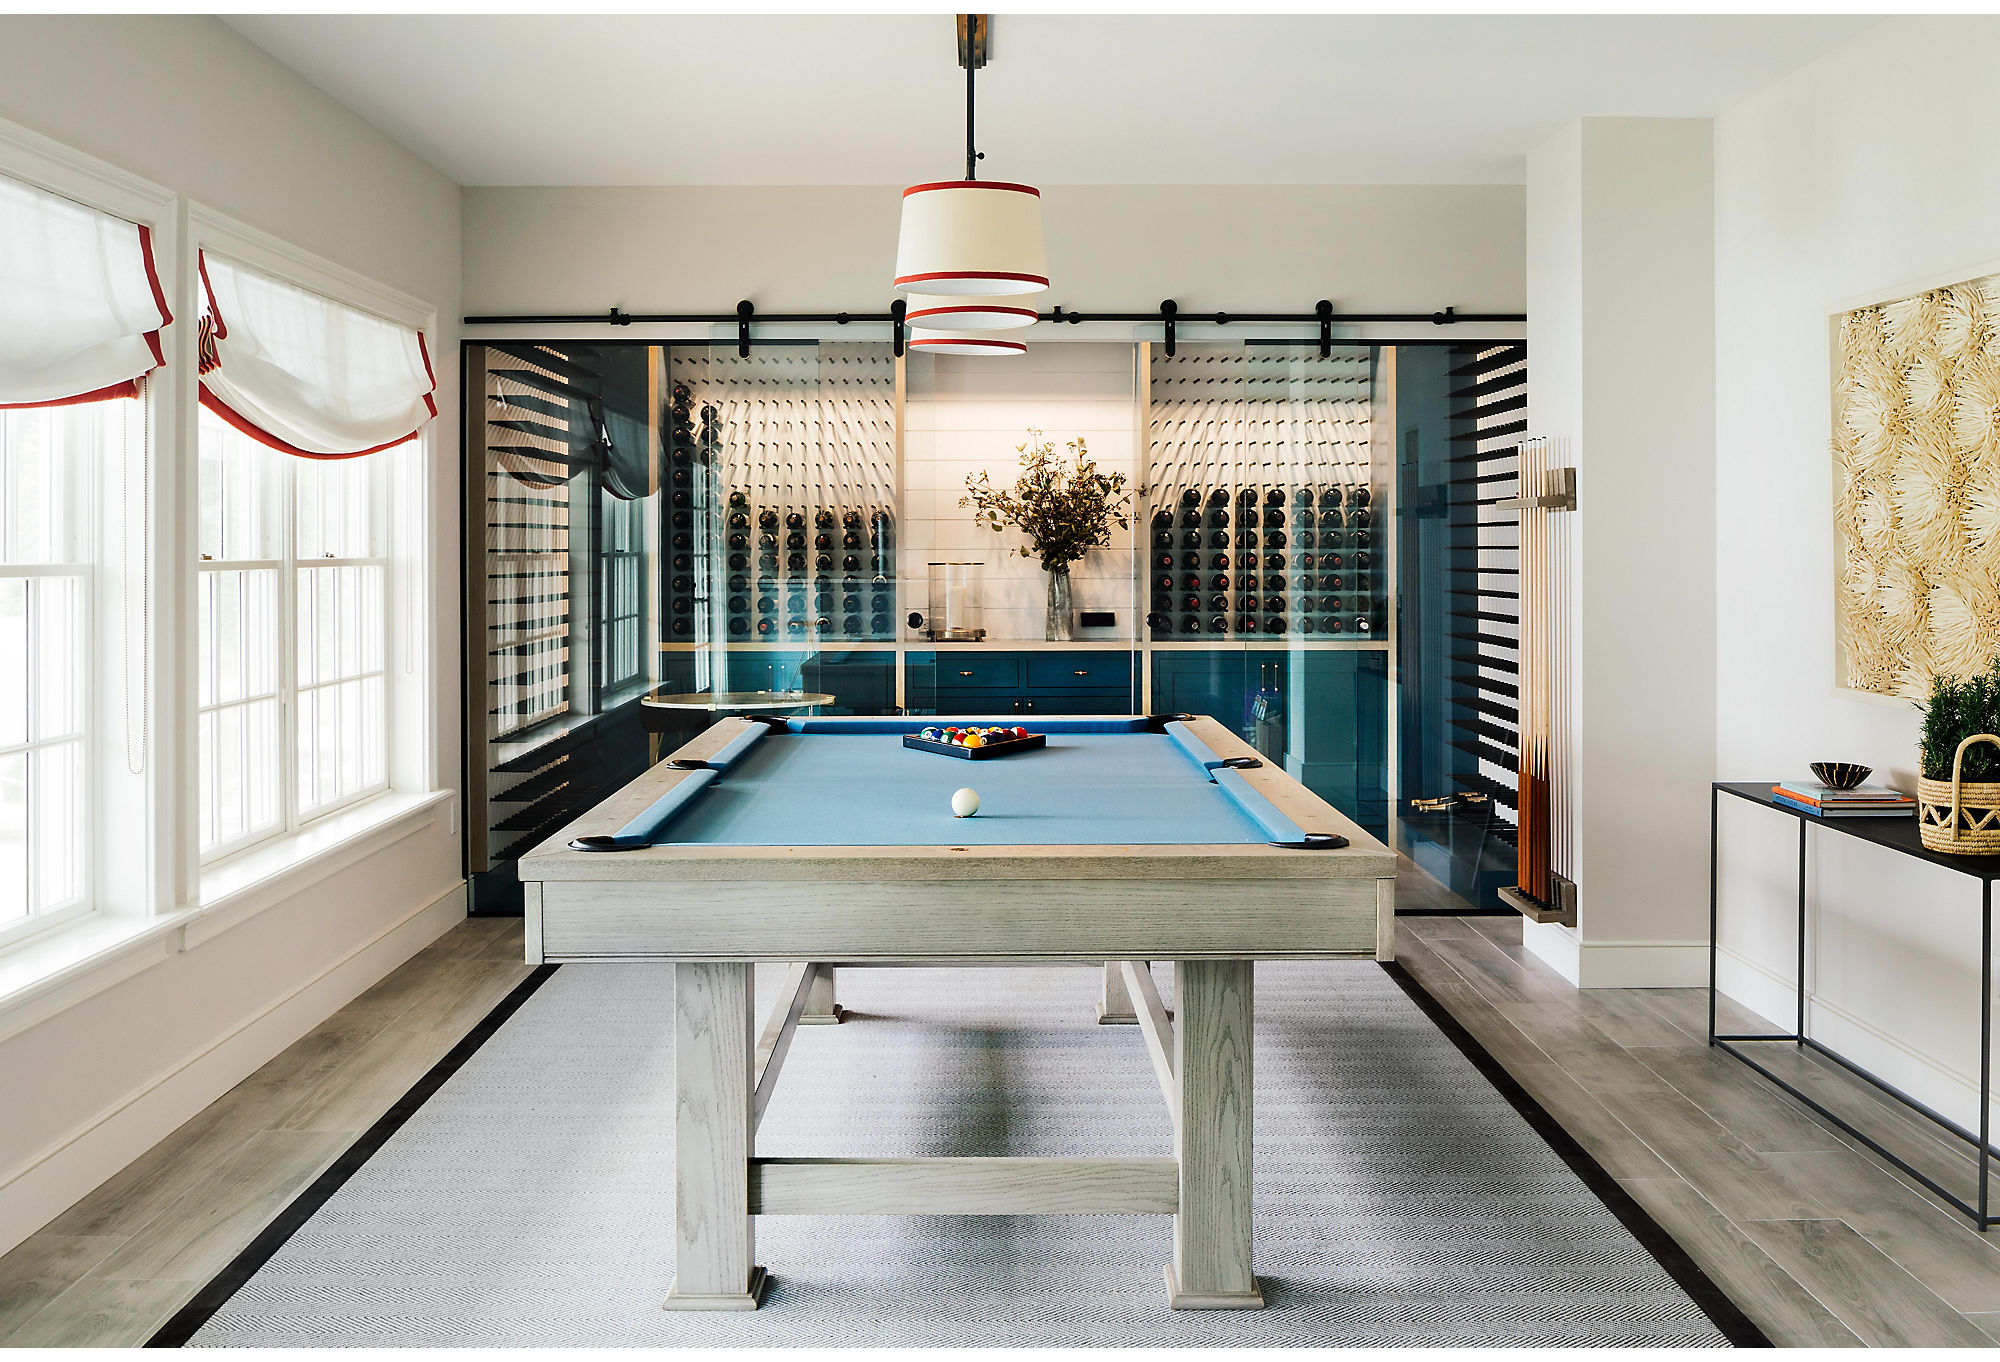 """Don't be fooled into thinking the redesigned basement is just a glorified man cave, warns Chauncey. """"It was really the wifewho was the driving force of this space,"""" she says. """"I don't know what you would tag the 'she shed' version of a wine cellar, but this is it."""""""